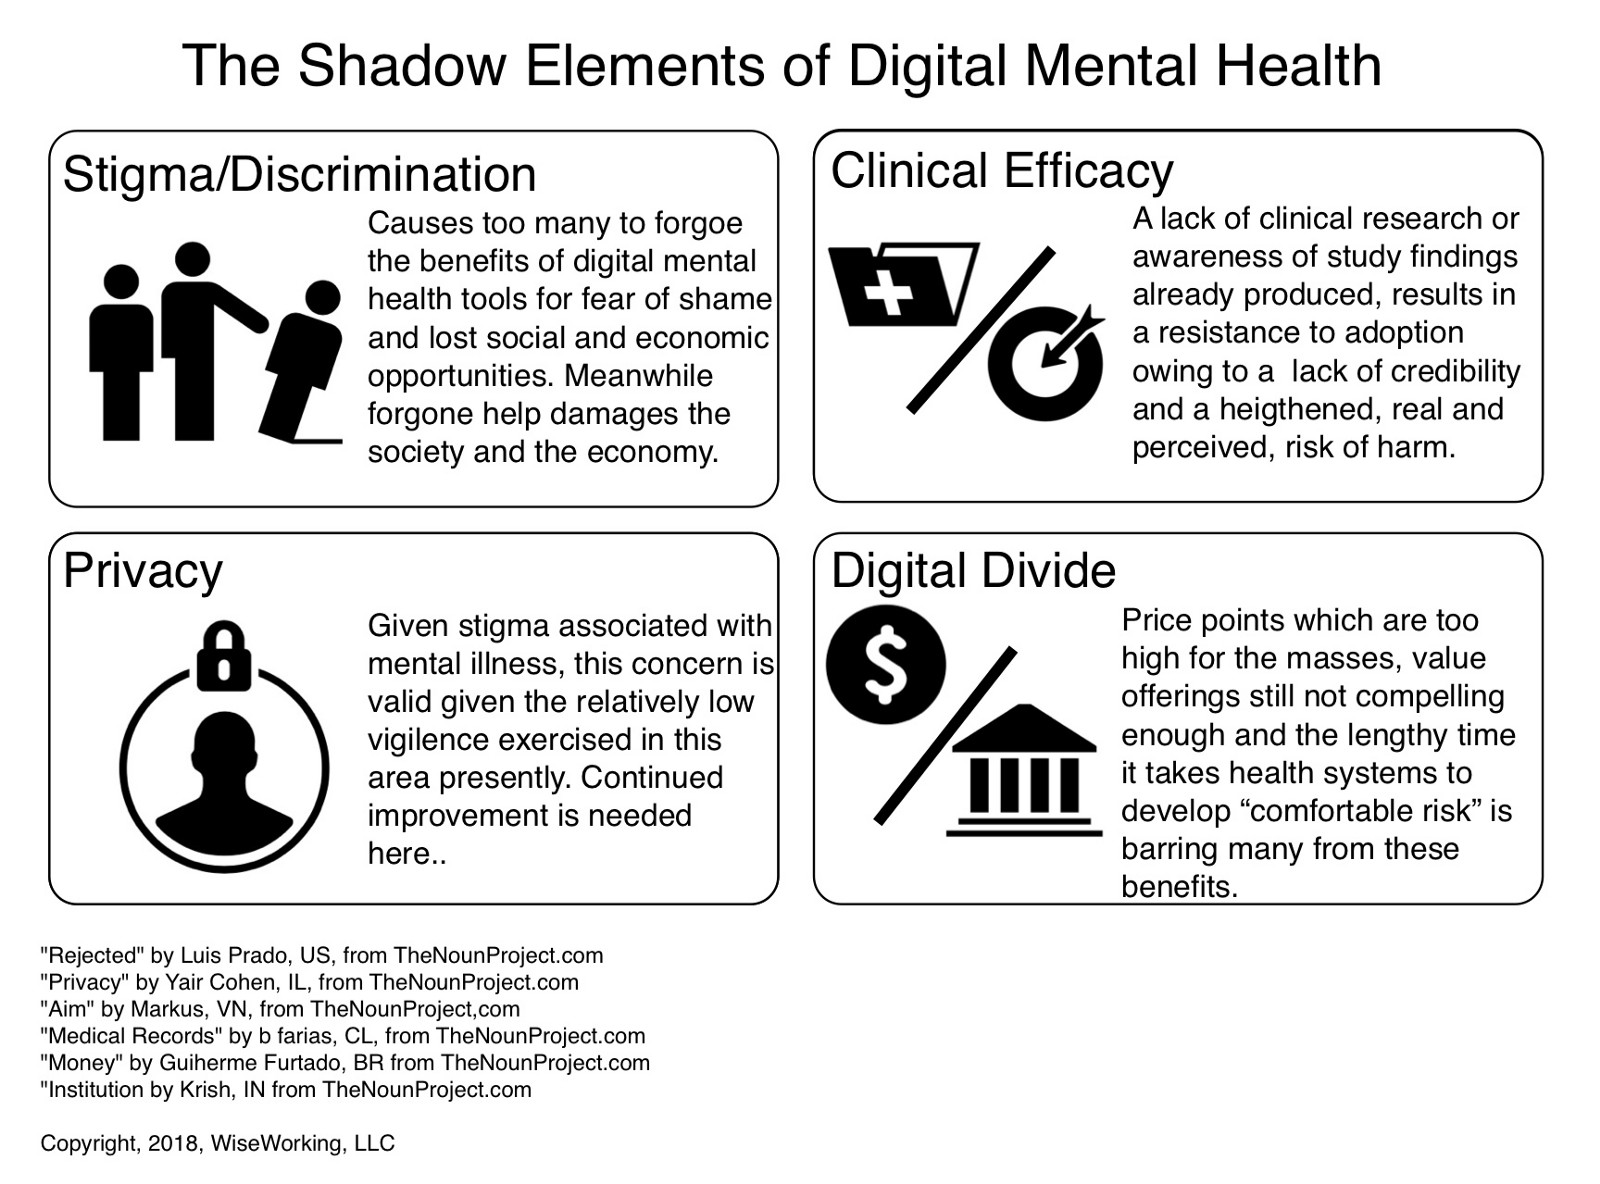 4 Shadow Elements Limiting Digital Mental Health S Rate Of Adoption